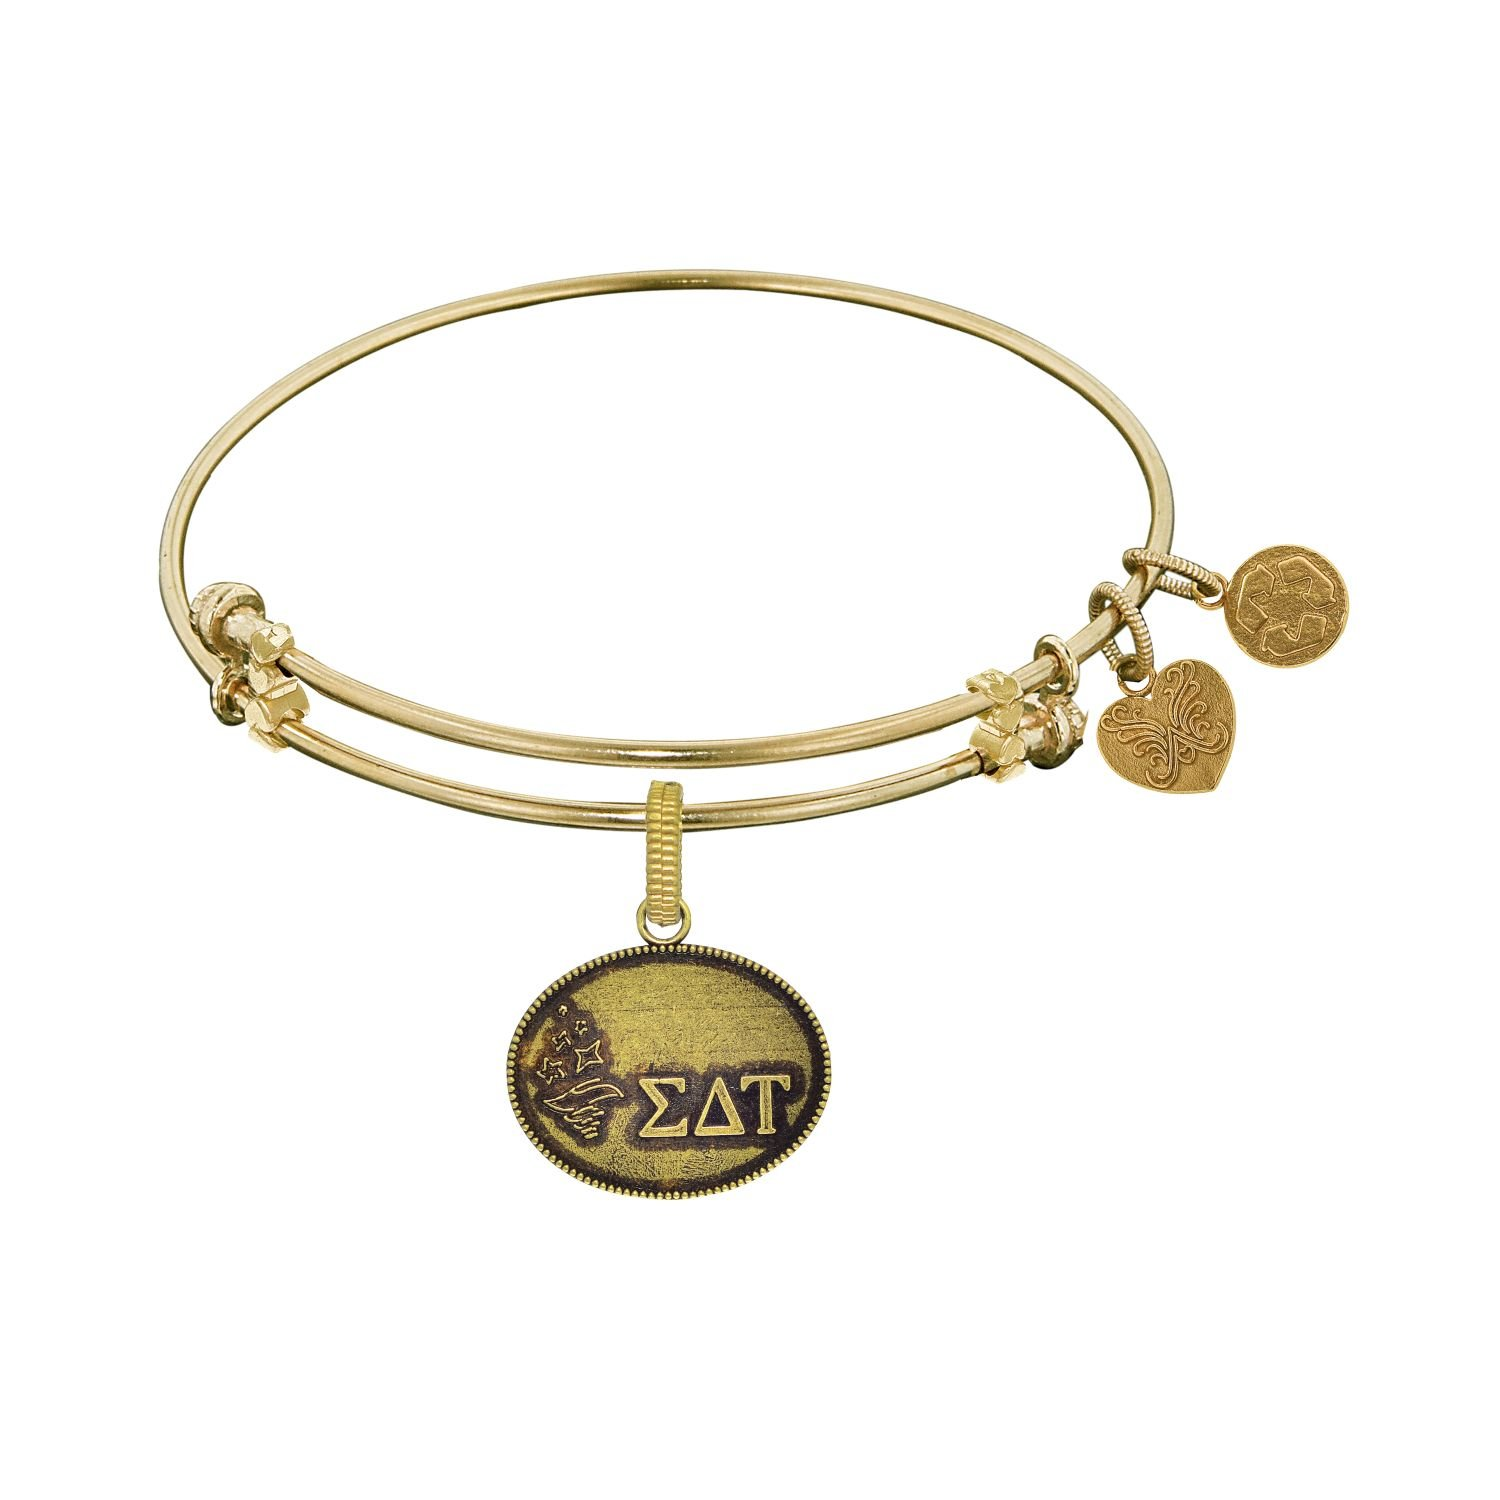 Angelica jewelry Collection Simga Delta Tau bracelet Brass with Yellow Finish